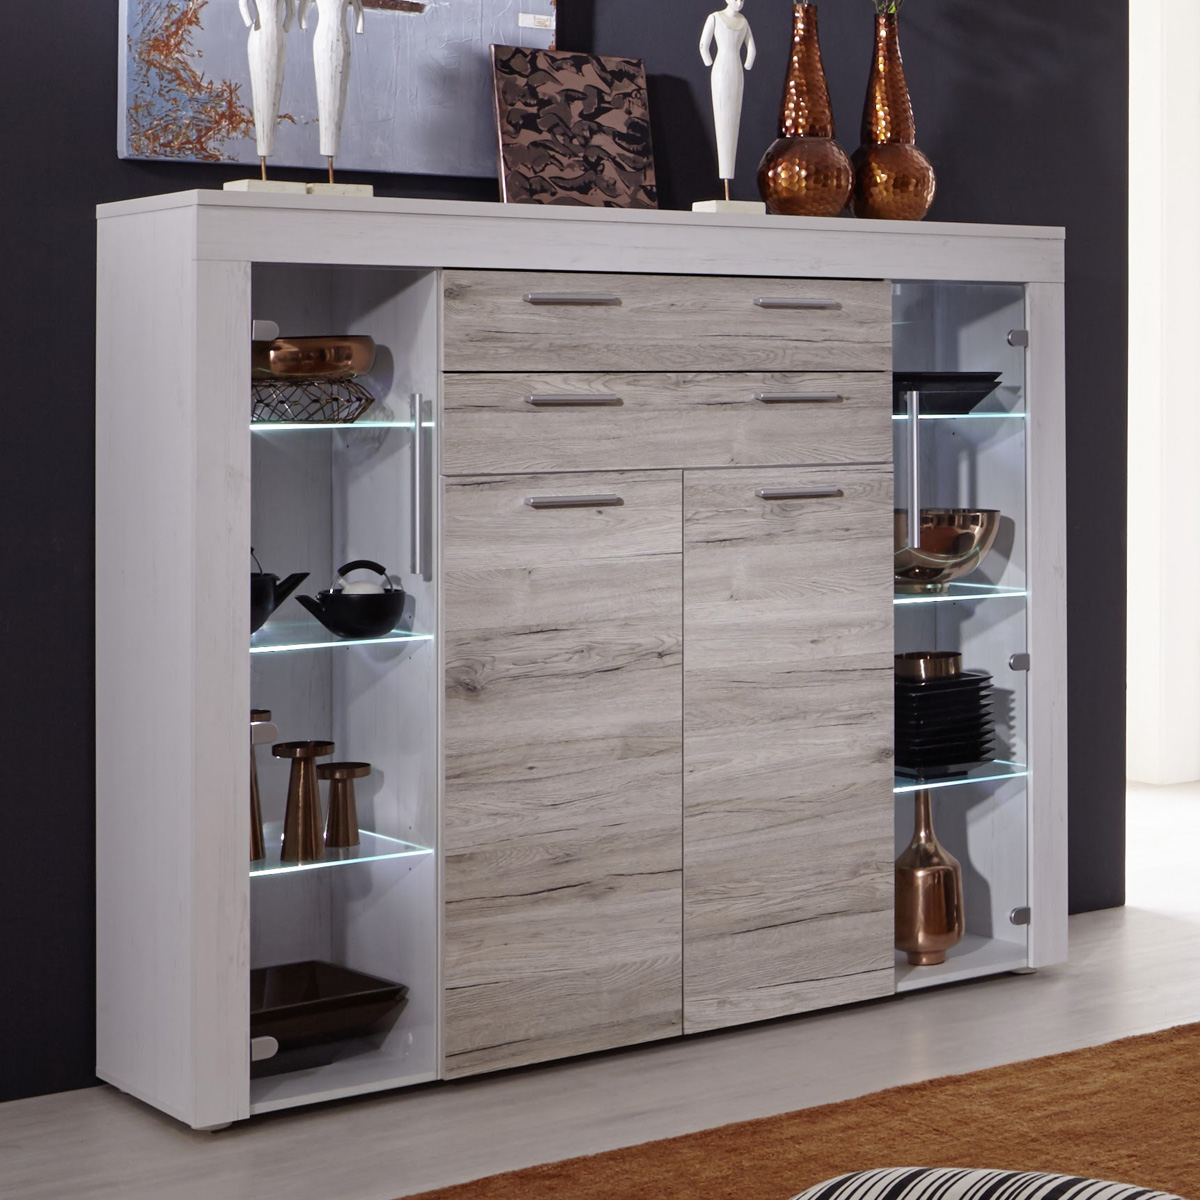 highboard boom kommode in pinie wei struktur und eiche san remo sand wohnzimmer ebay. Black Bedroom Furniture Sets. Home Design Ideas